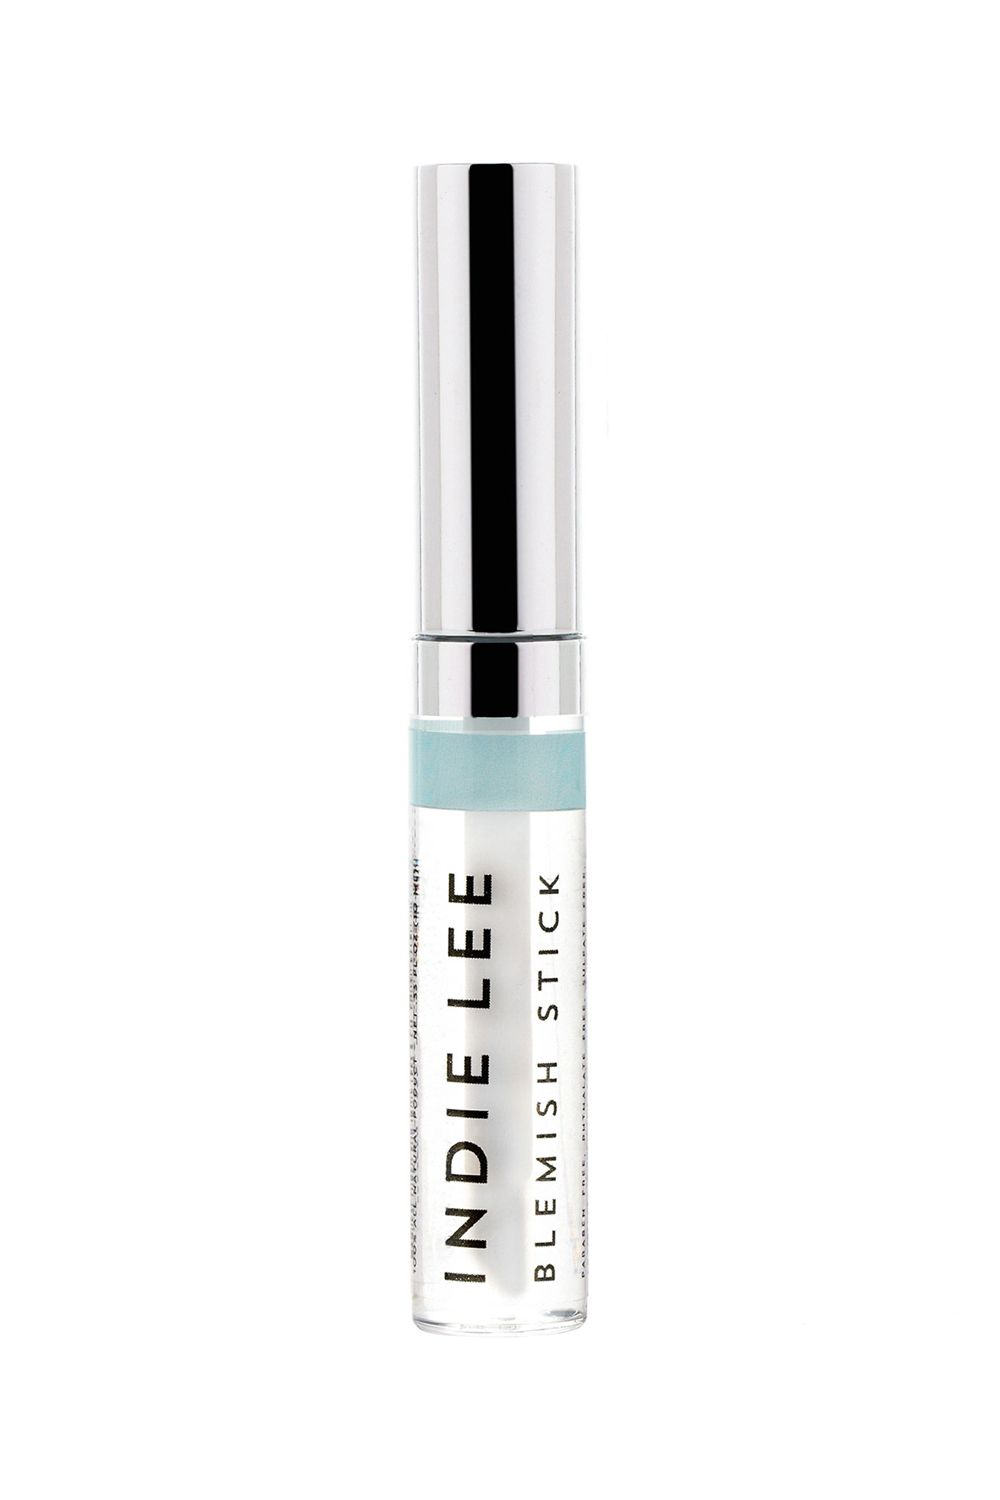 """<p>Dab this clear gel over bumps and pimples and let the soothing camphor and redness-reducing zinc sulphate shrink breakouts while you sleep.</p><p><i data-redactor-tag=""""i"""">Indie Lee Blemish Stick, $28</i></p><p><strong data-redactor-tag=""""strong"""">BUY IT: <a href=""""https://www.amazon.com/Indie-Lee-Blemish-Stick/dp/B005UPIVOC"""">amazon.com</a>.</strong></p>"""